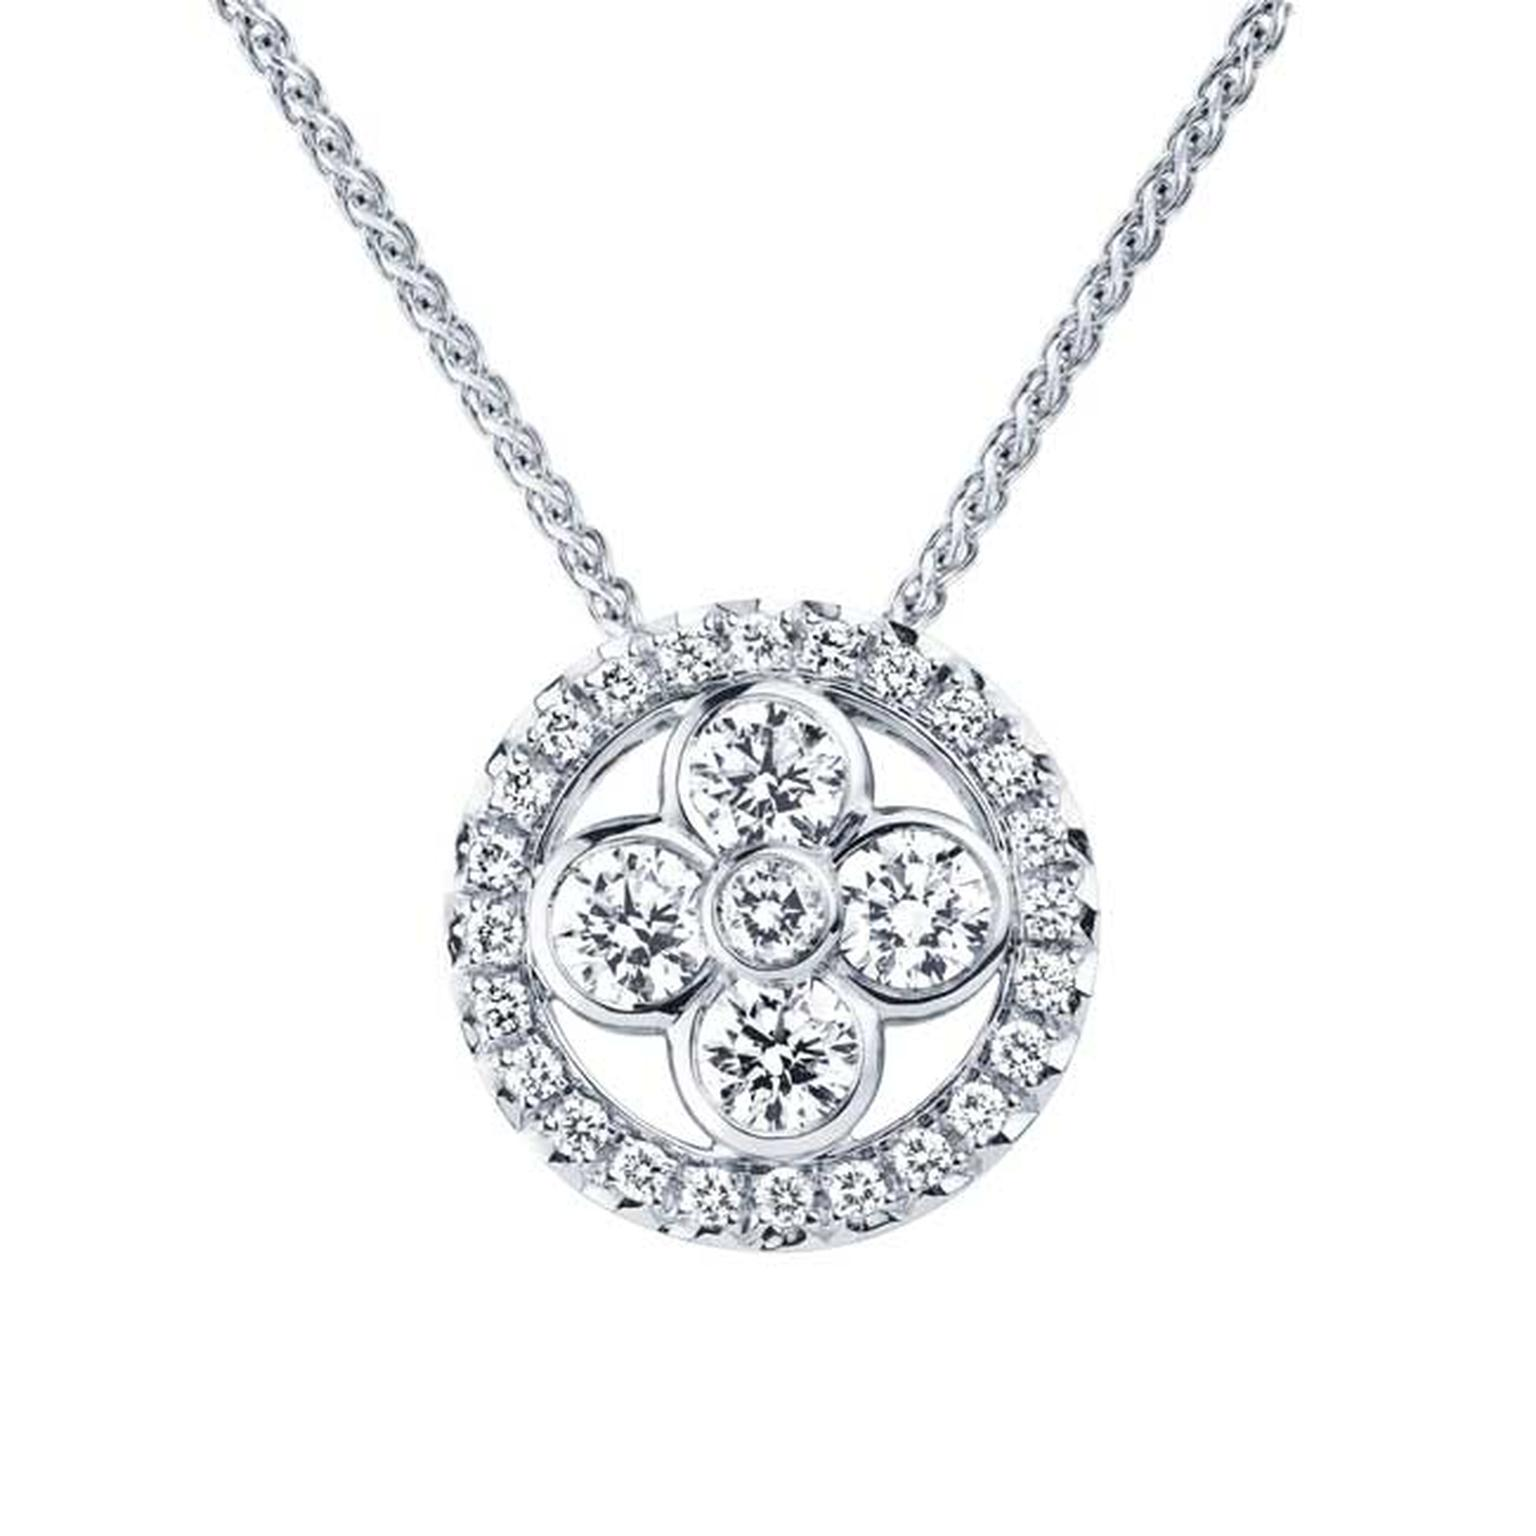 Louis Vuitton Monogram Sun and Stars collection Sun pendant necklace in white gold_main